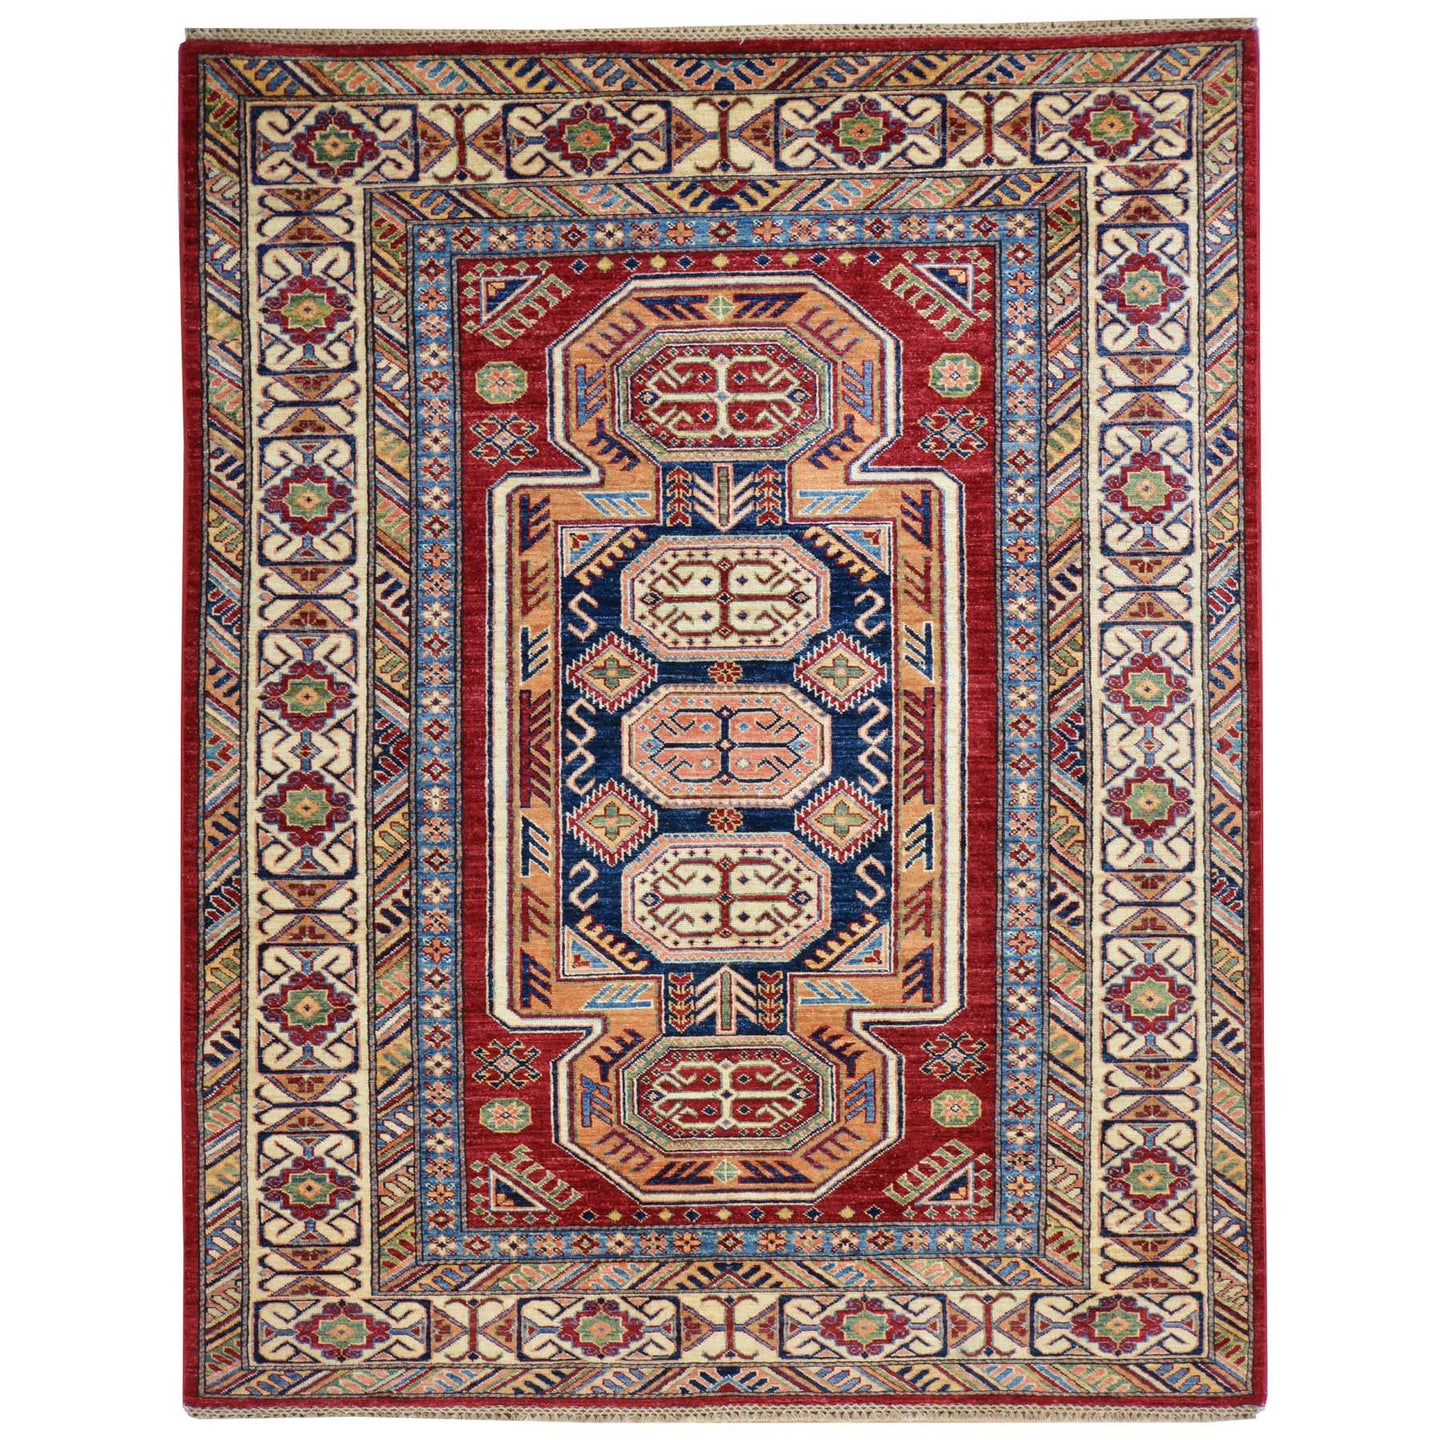 Oriental rugs, hand-knotted carpets, sustainable rugs, classic world oriental rugs, handmade, United States, interior design,  Brral-3231